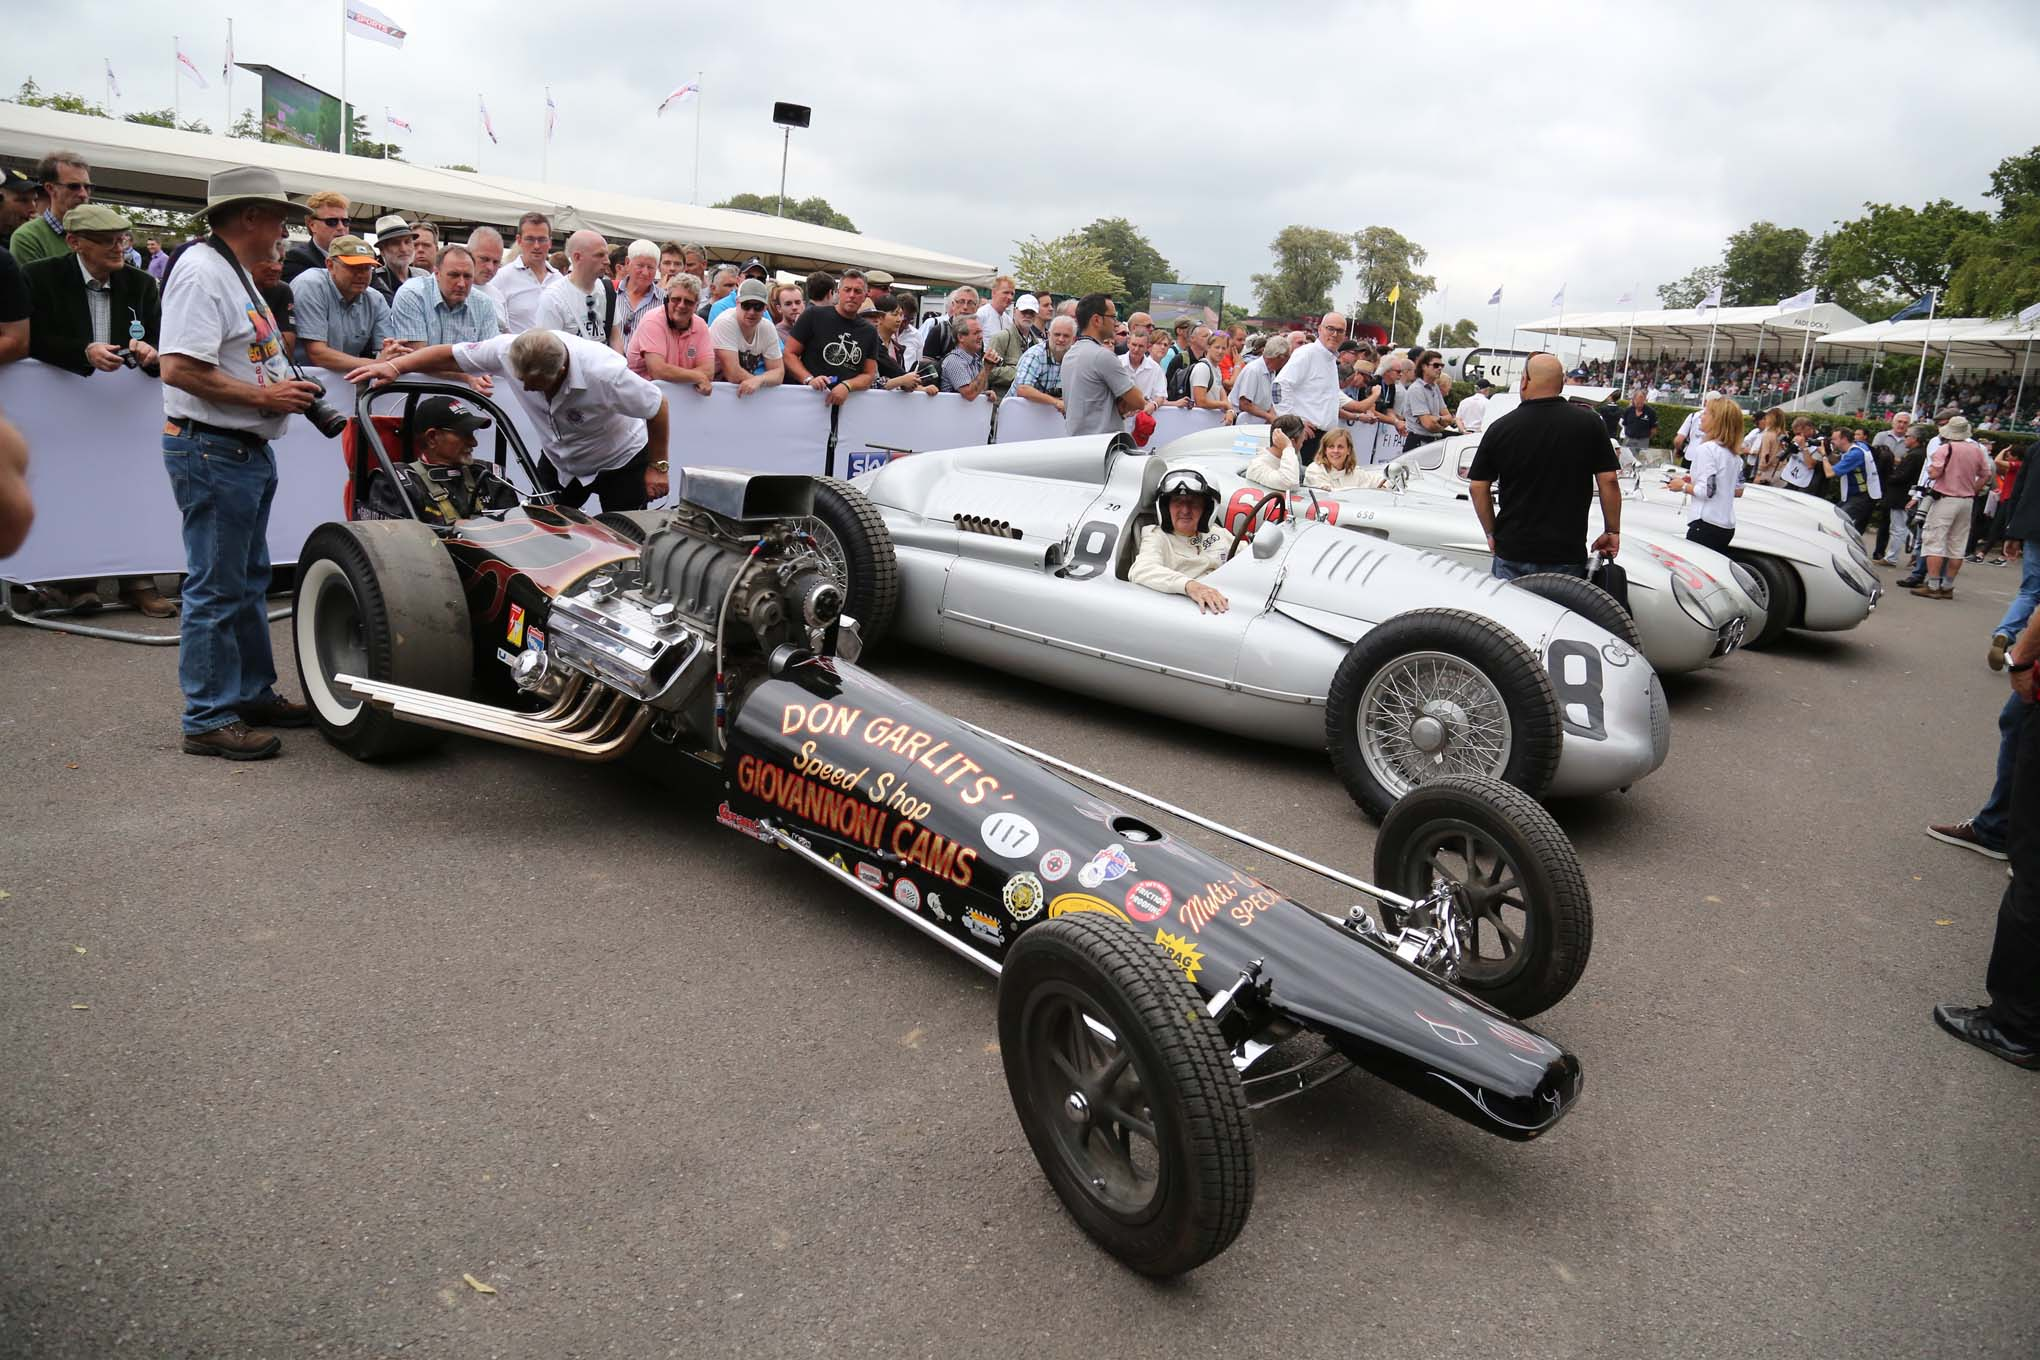 The Goodwood Festival showcases racing cars from all eras and sanctioning bodies.